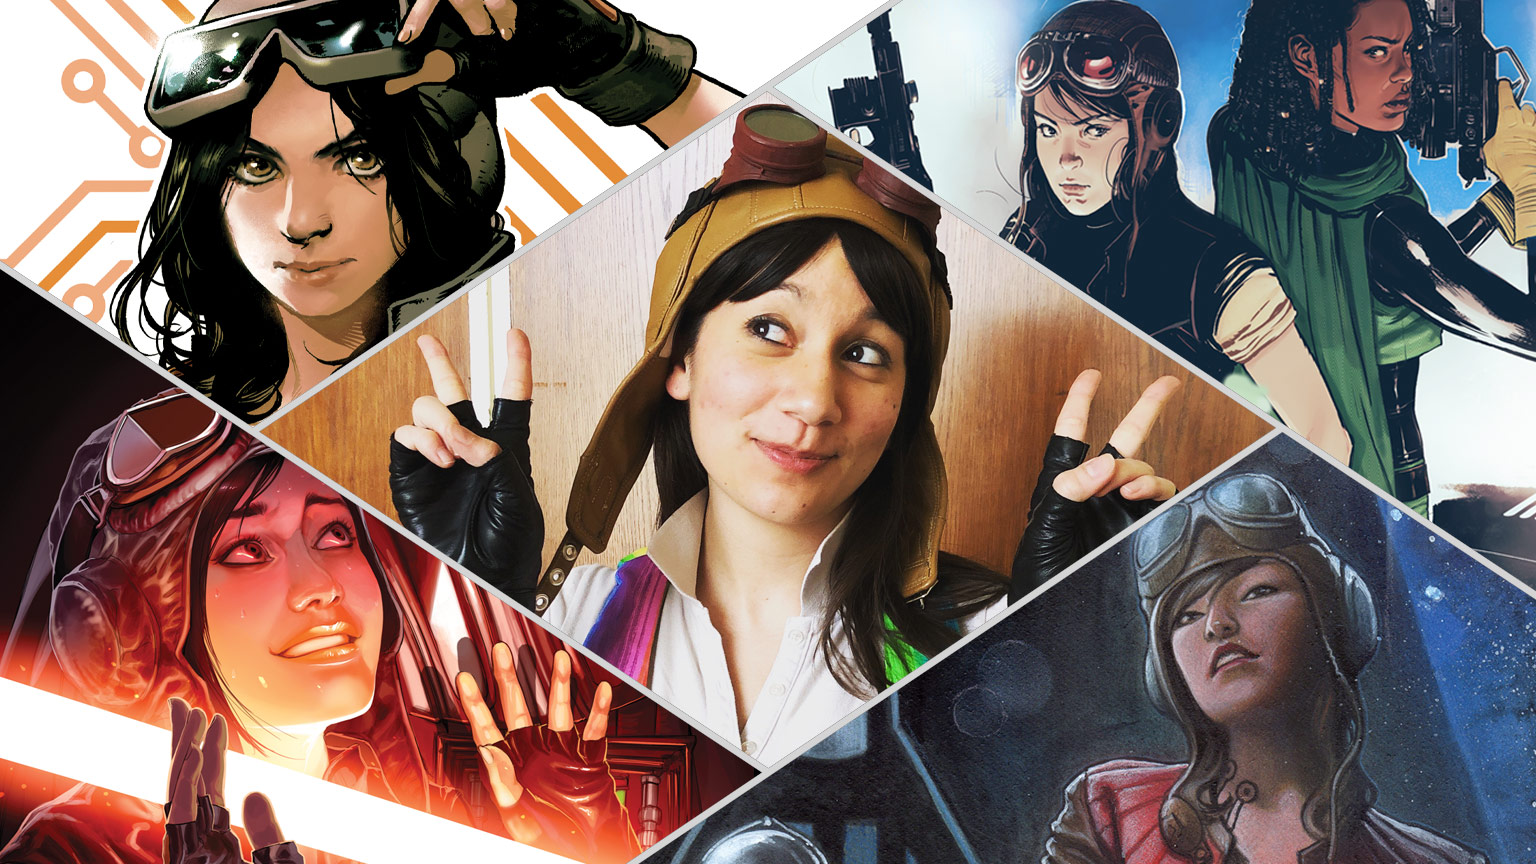 Bria LaVorgna cosplaying as Doctor Aphra